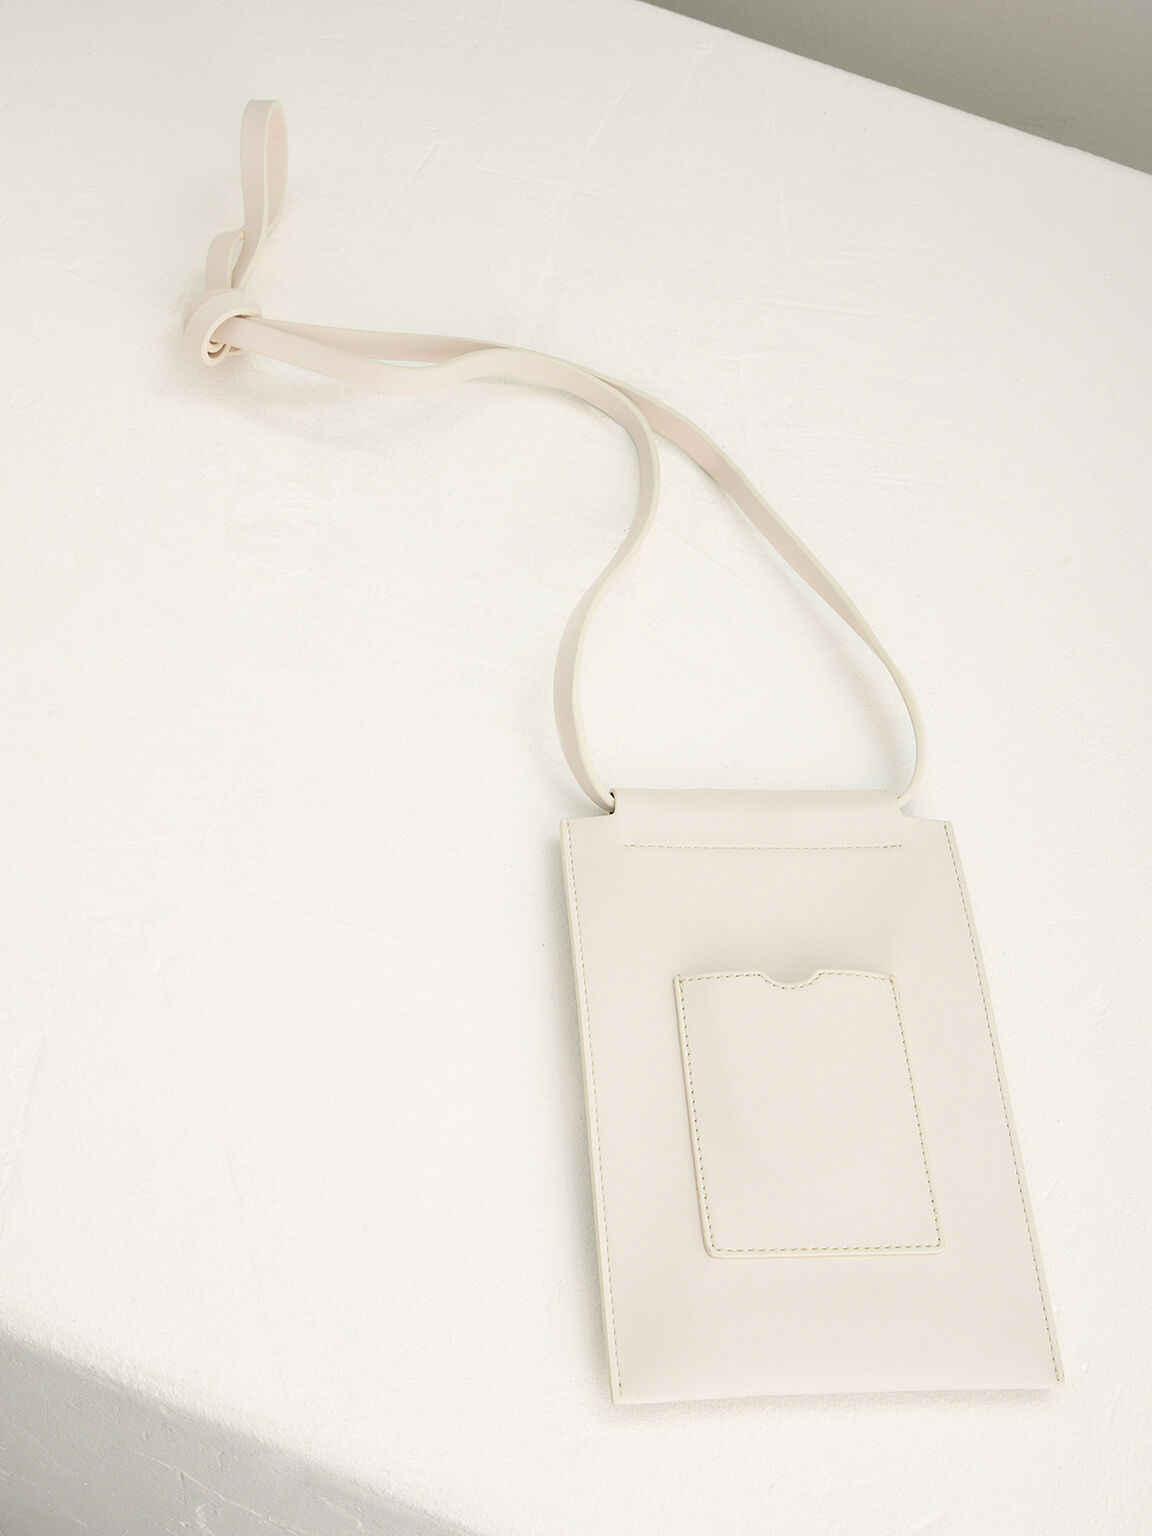 Phone Pouch with Lanyard, Beige, hi-res